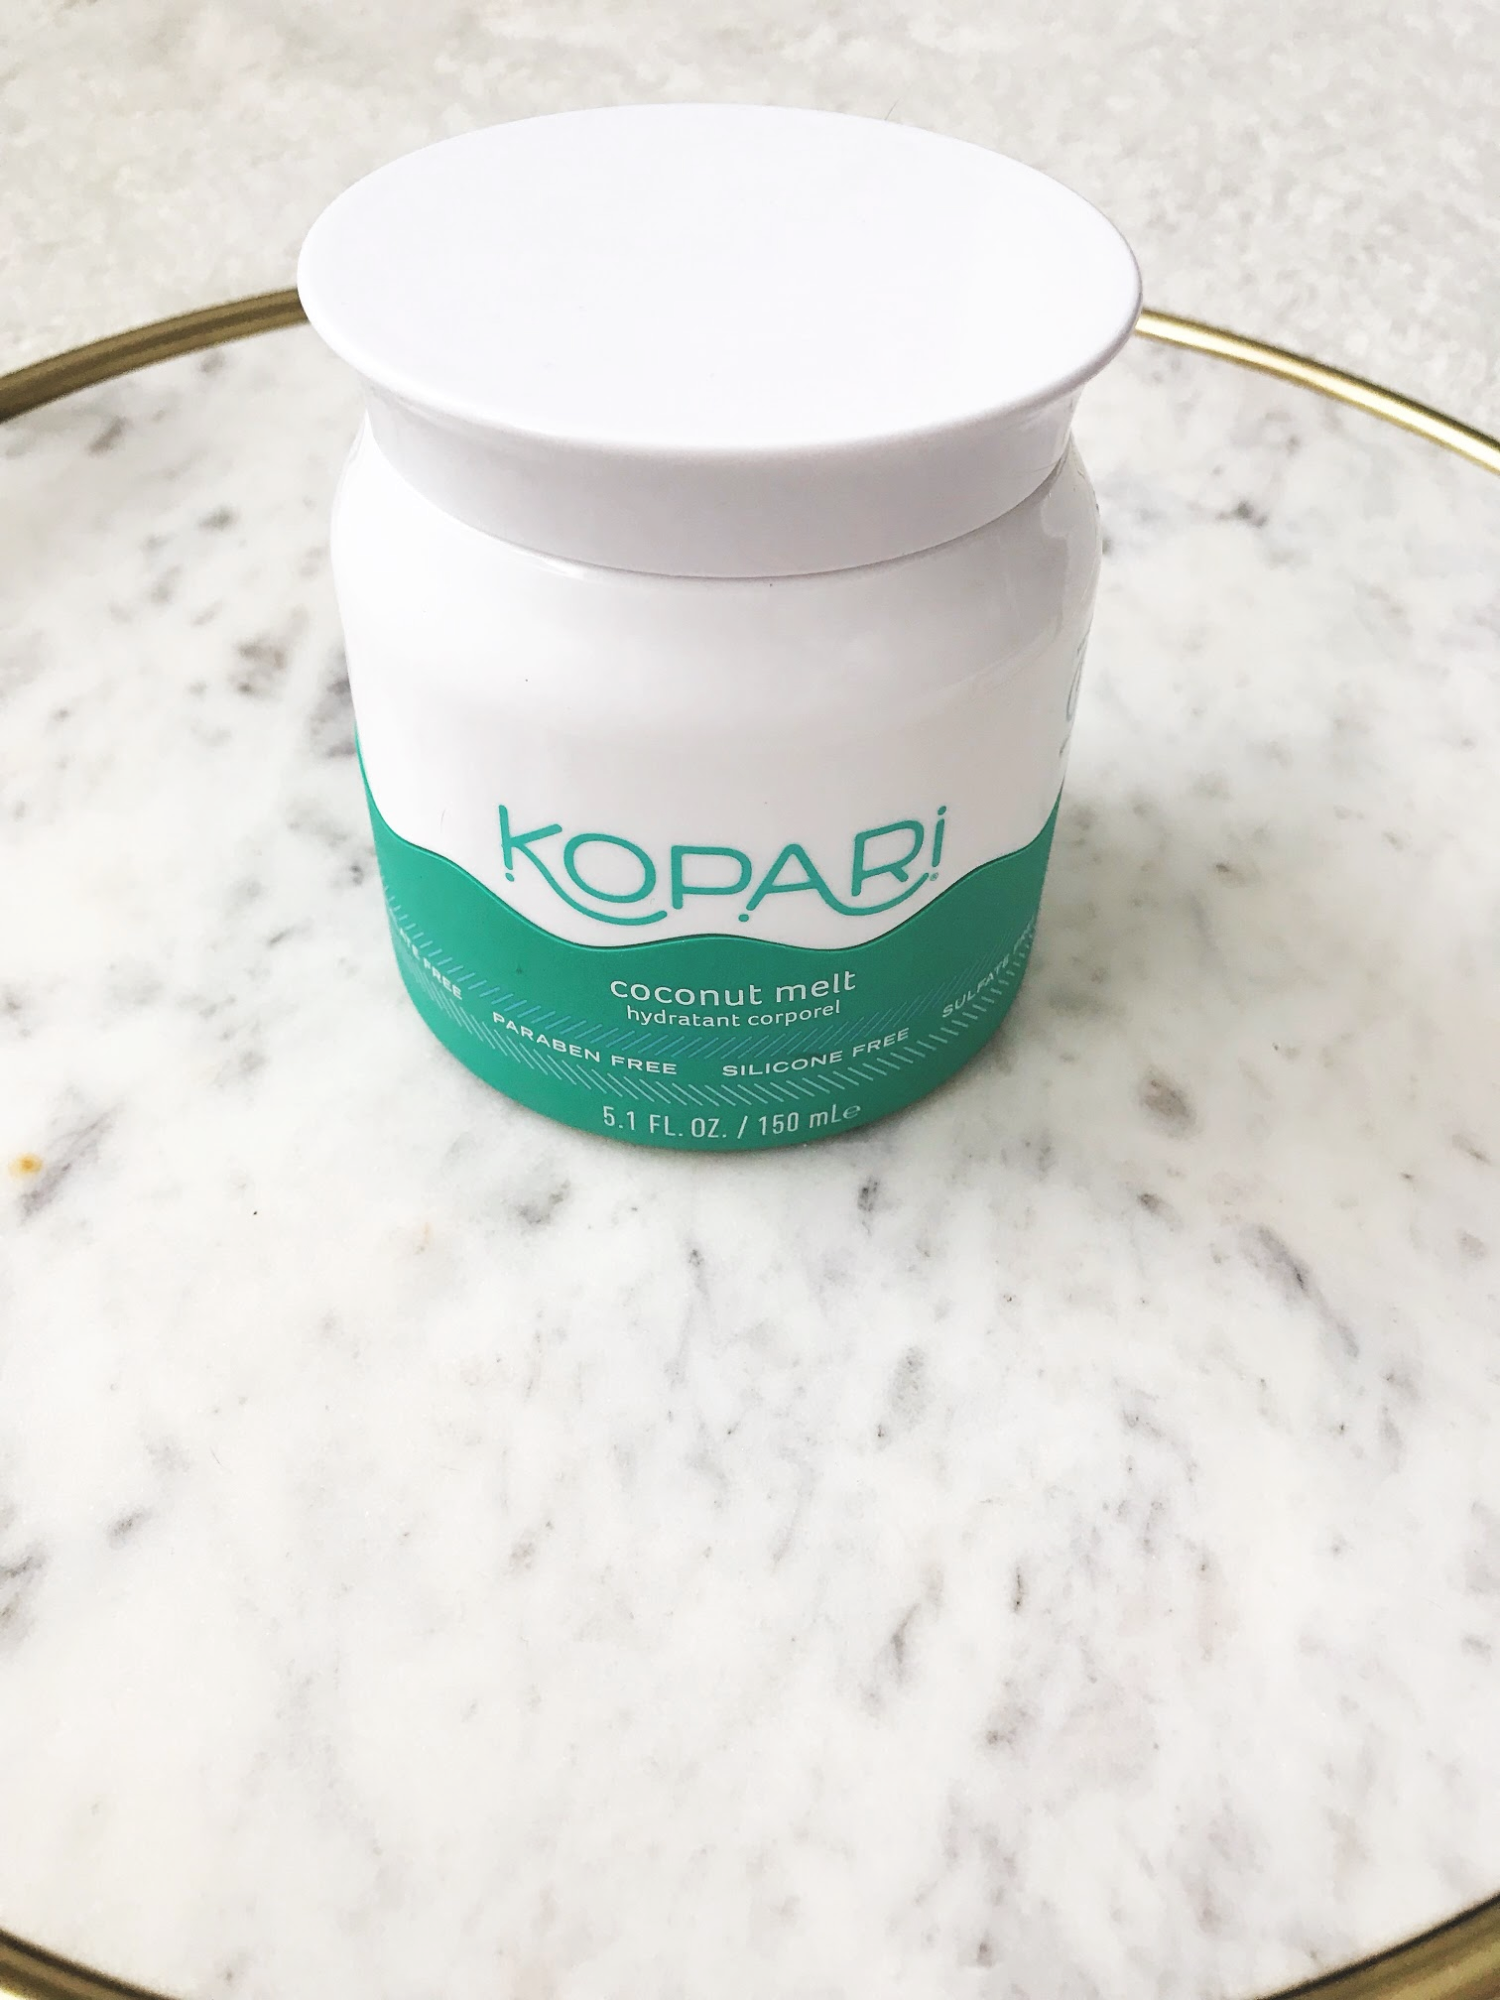 STH 6 Beauty Products I'm Currently Loving-Kopari Coconut Melt